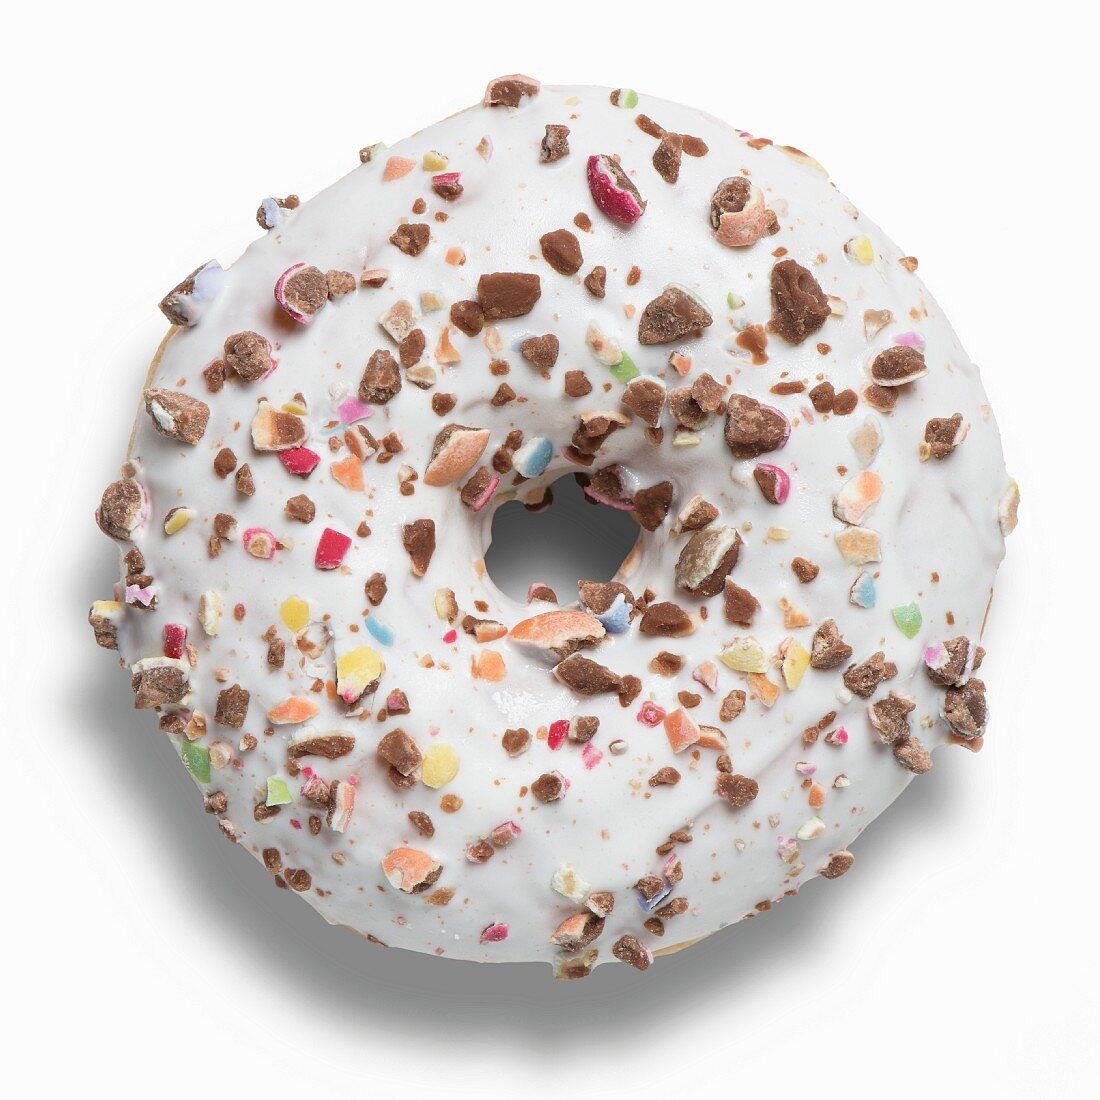 A doughnut with white icing and chopped chocolate beans